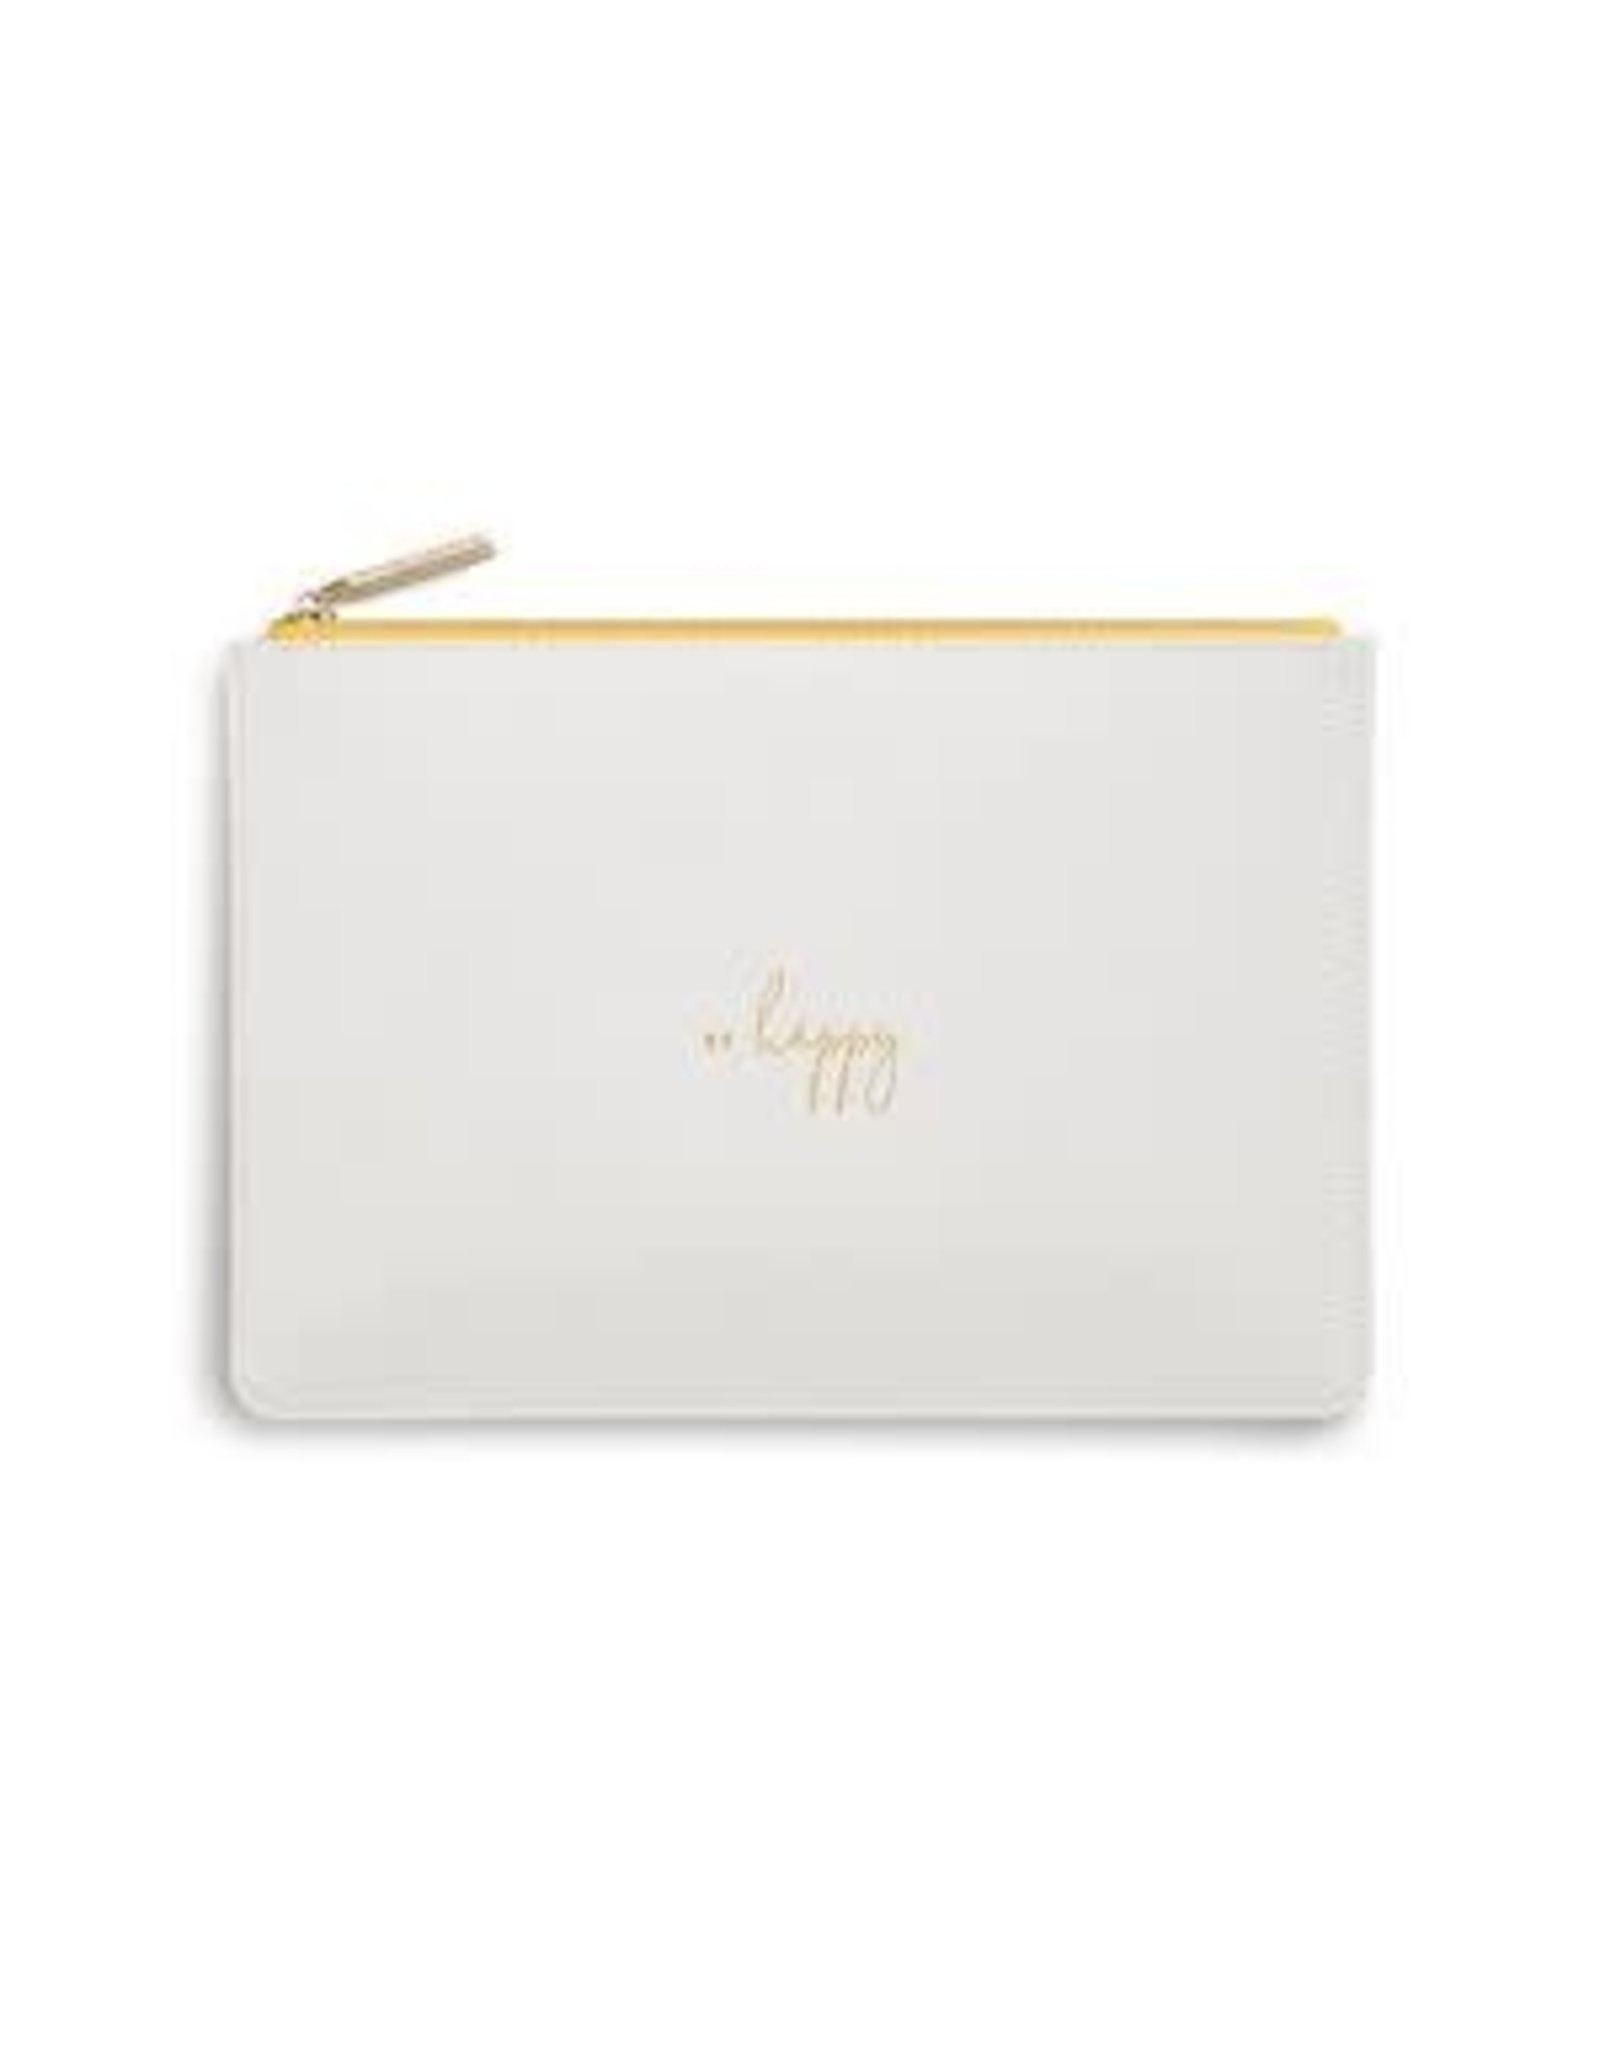 Katie Loxton Colour Pop Perfect Pouch- White